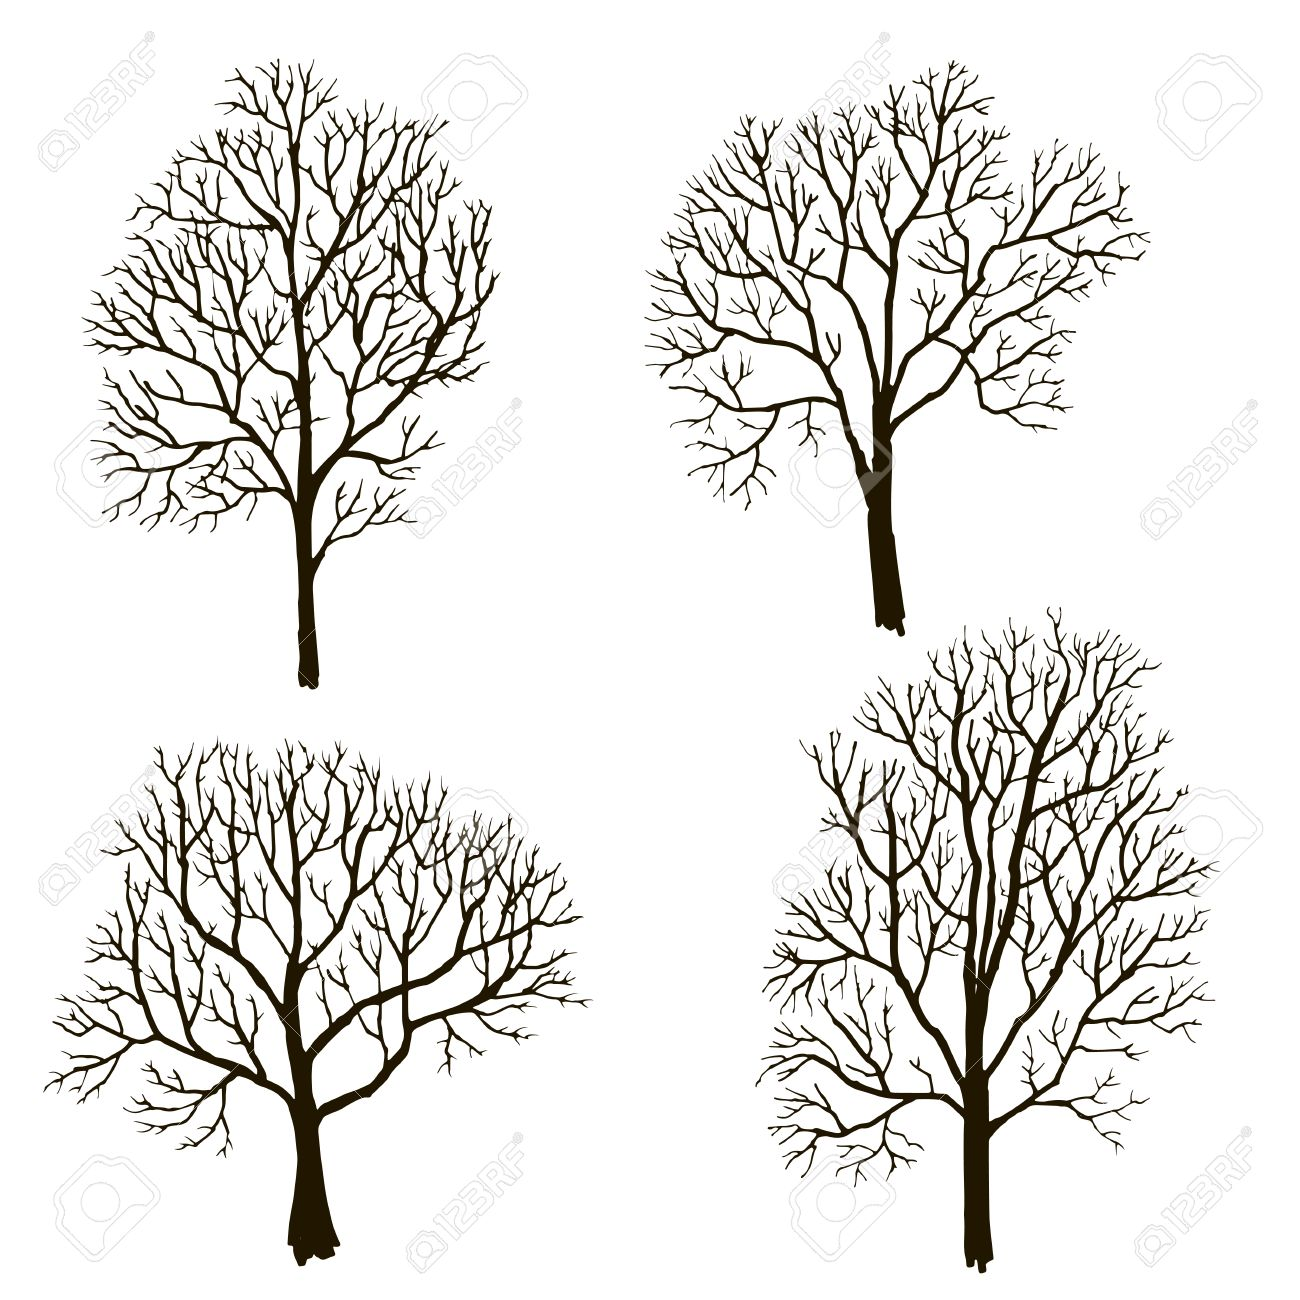 1300x1300 Silhouettes Of Tree Without Leaves, Winter Trees, Hand Drawn